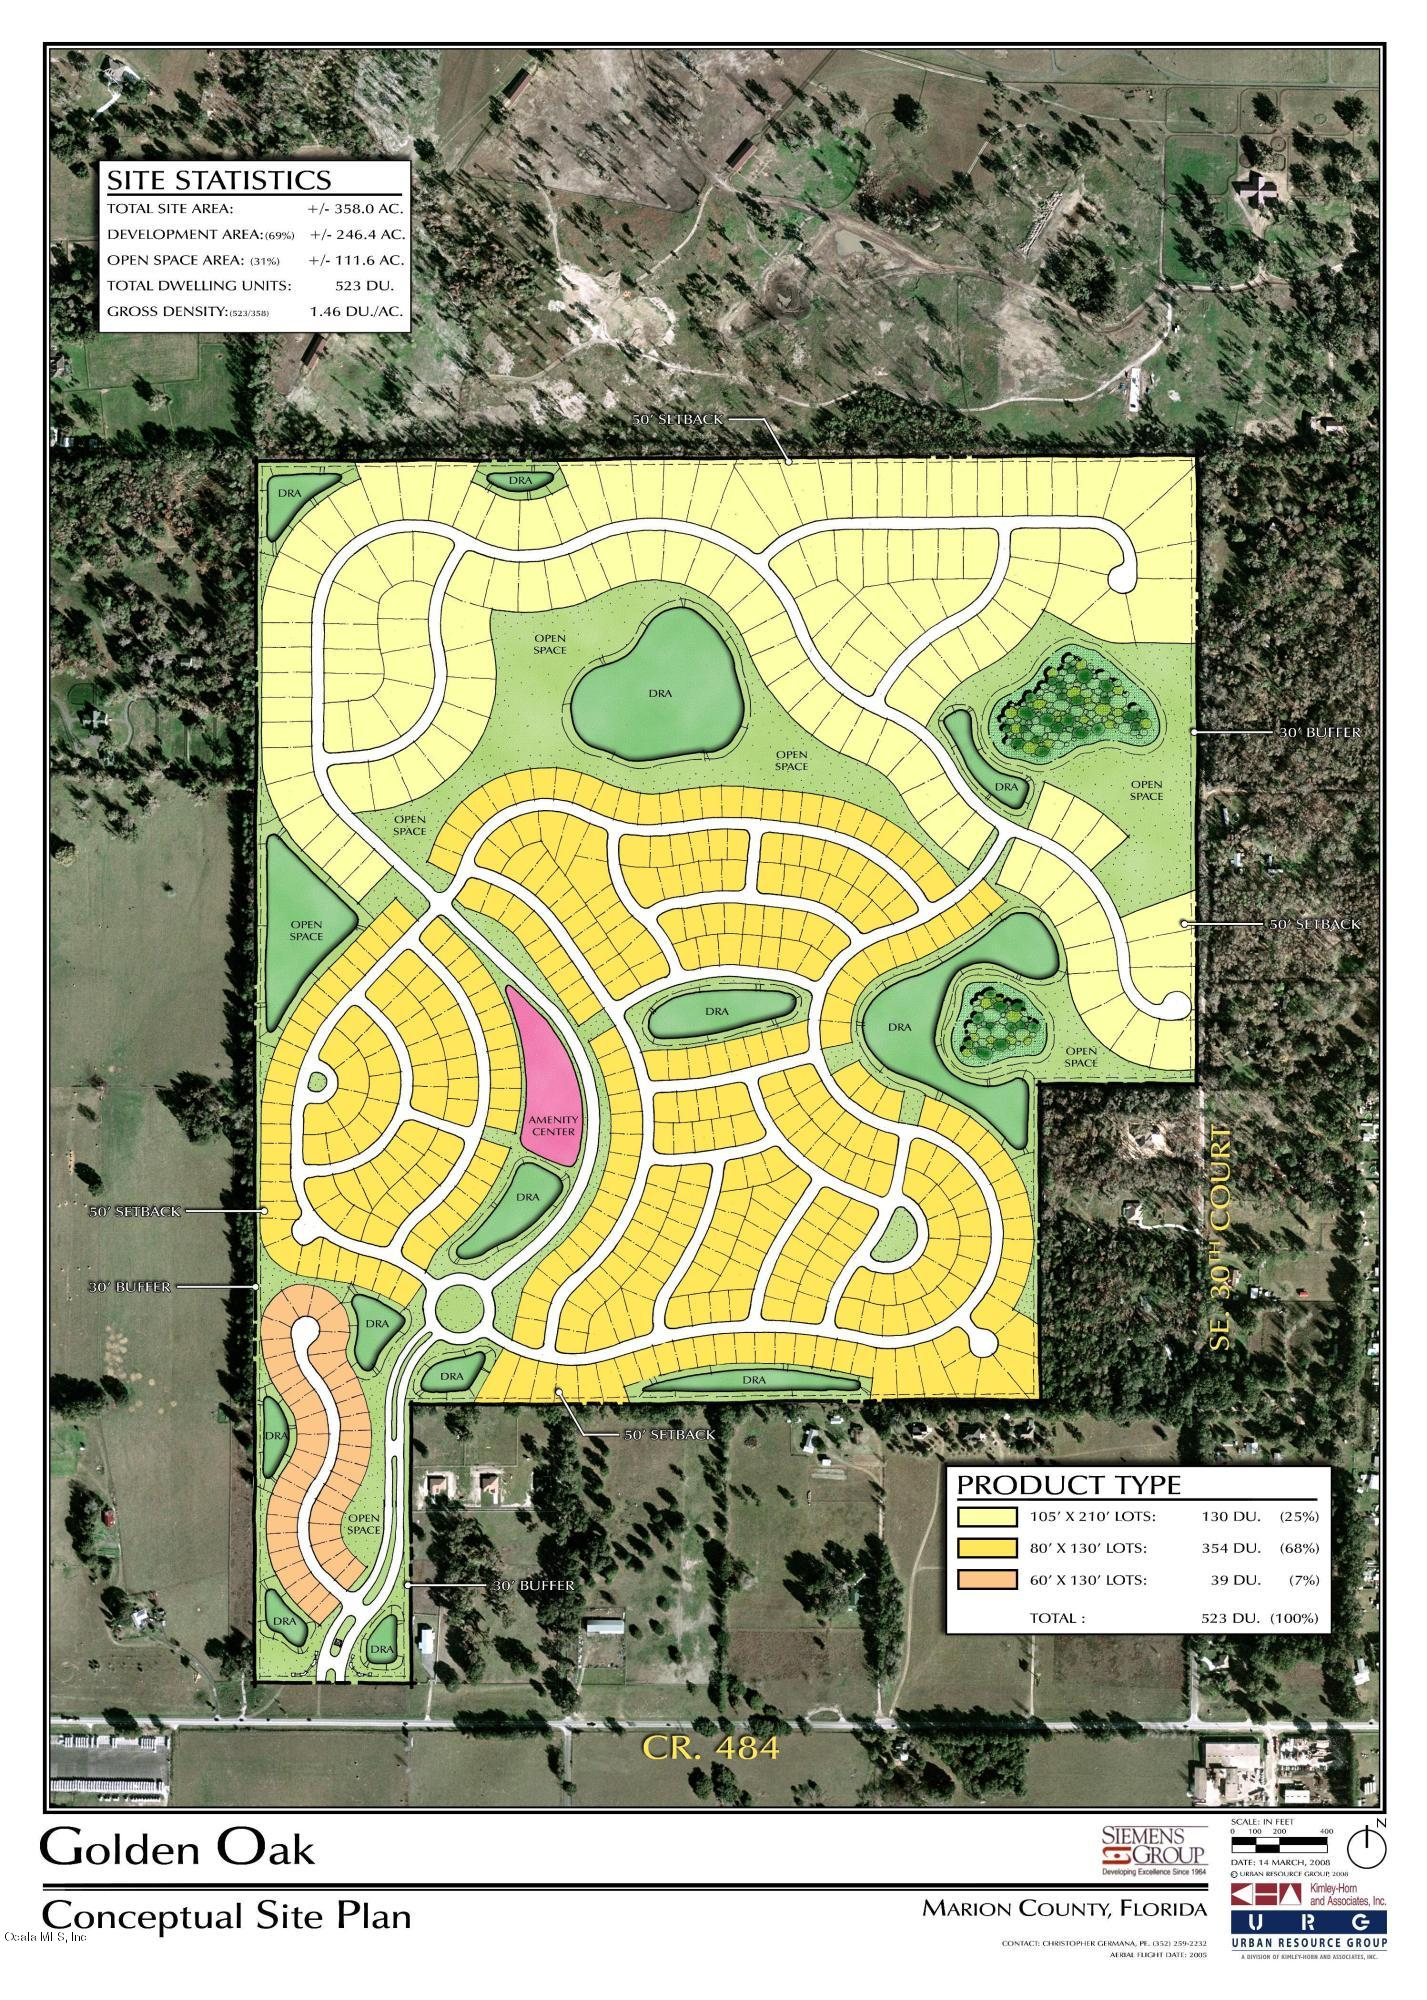 Approved for 895 Units on 358+ acres.